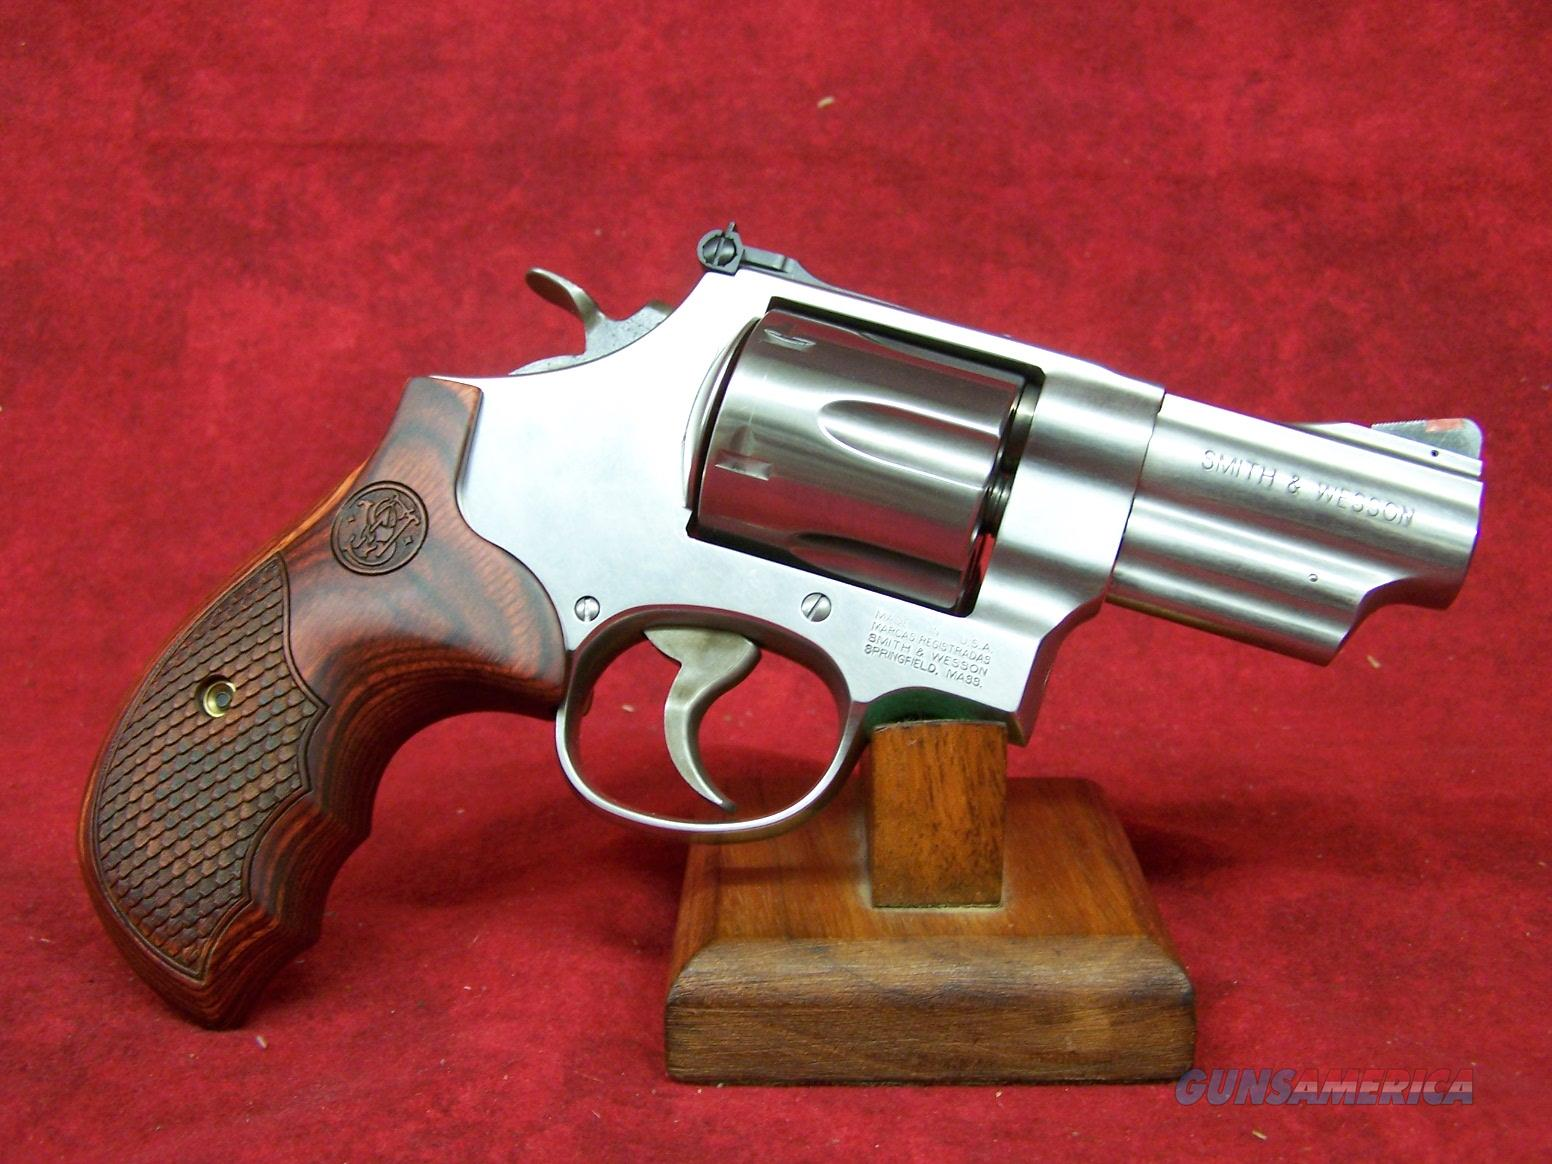 Smith & Wesson Model 629 Deluxe .44 Magnum 3 Inch Barrel (150715)  Guns > Pistols > Smith & Wesson Revolvers > Model 629